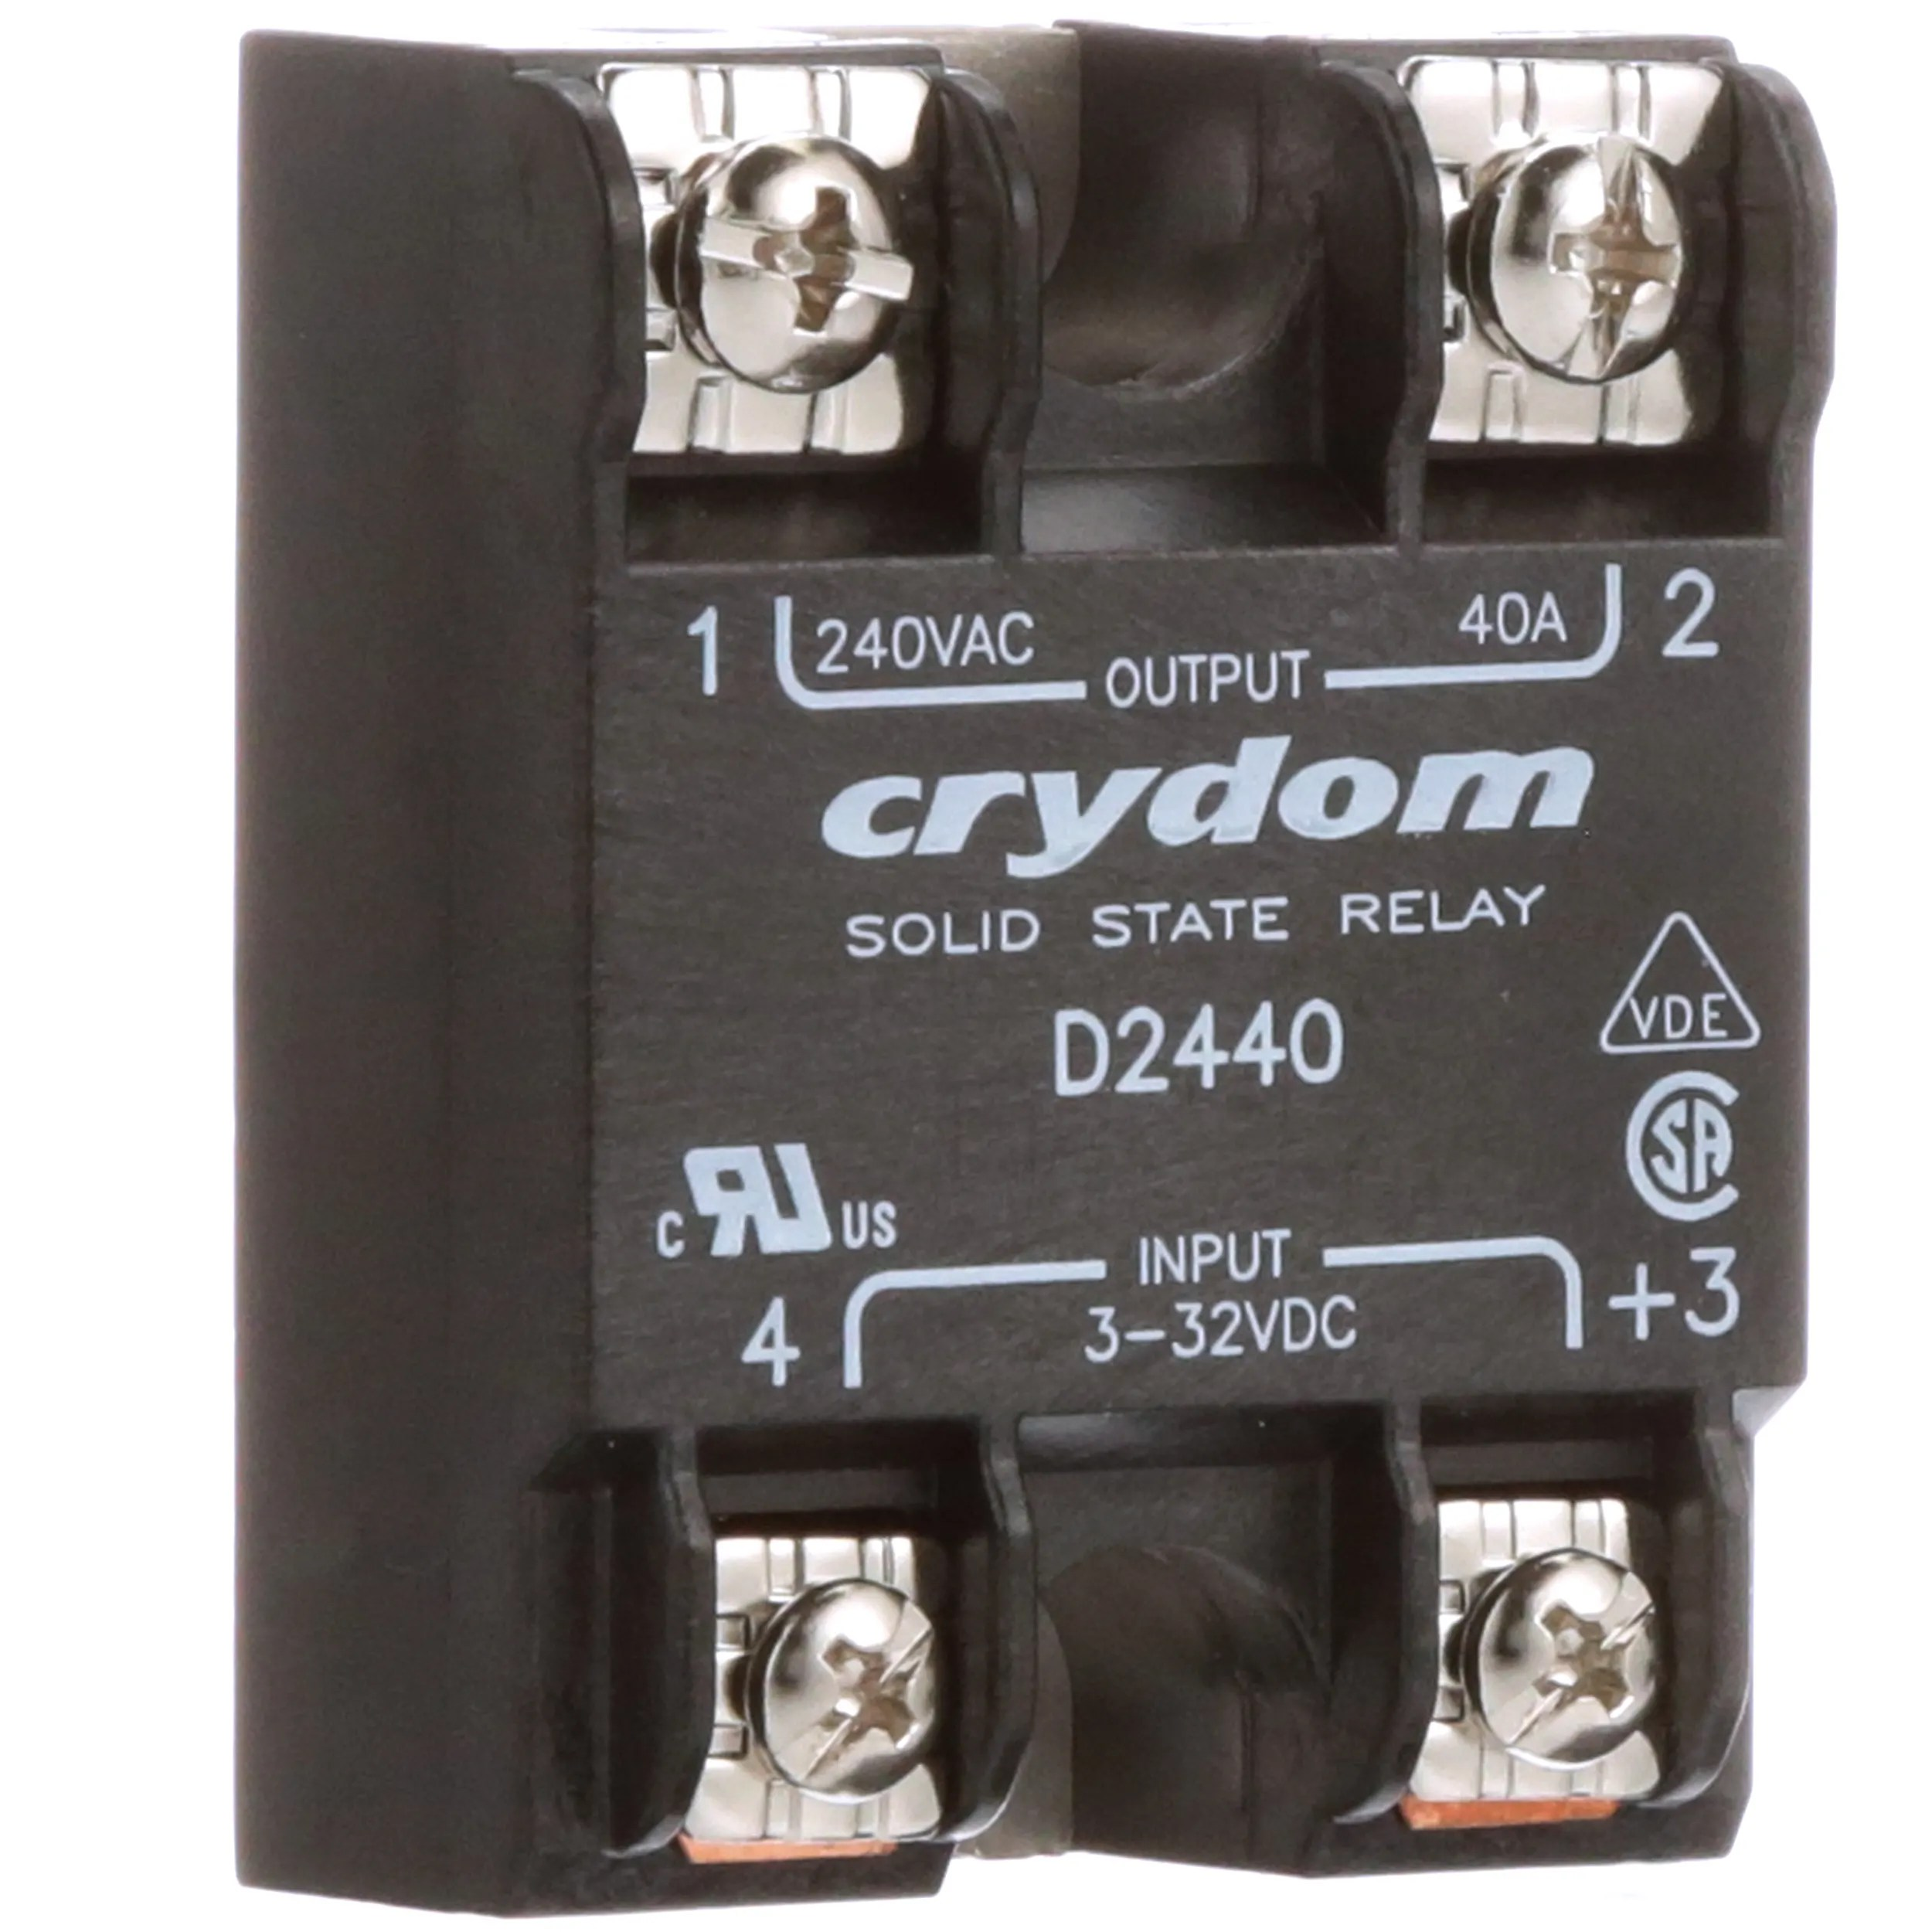 solid state relay wiring diagram crydom 39 cartoon plant cell sensata d2440 spst no cur rtg 40a vol 24 280vac ctrl 3 32vdc panel allied electronics automation